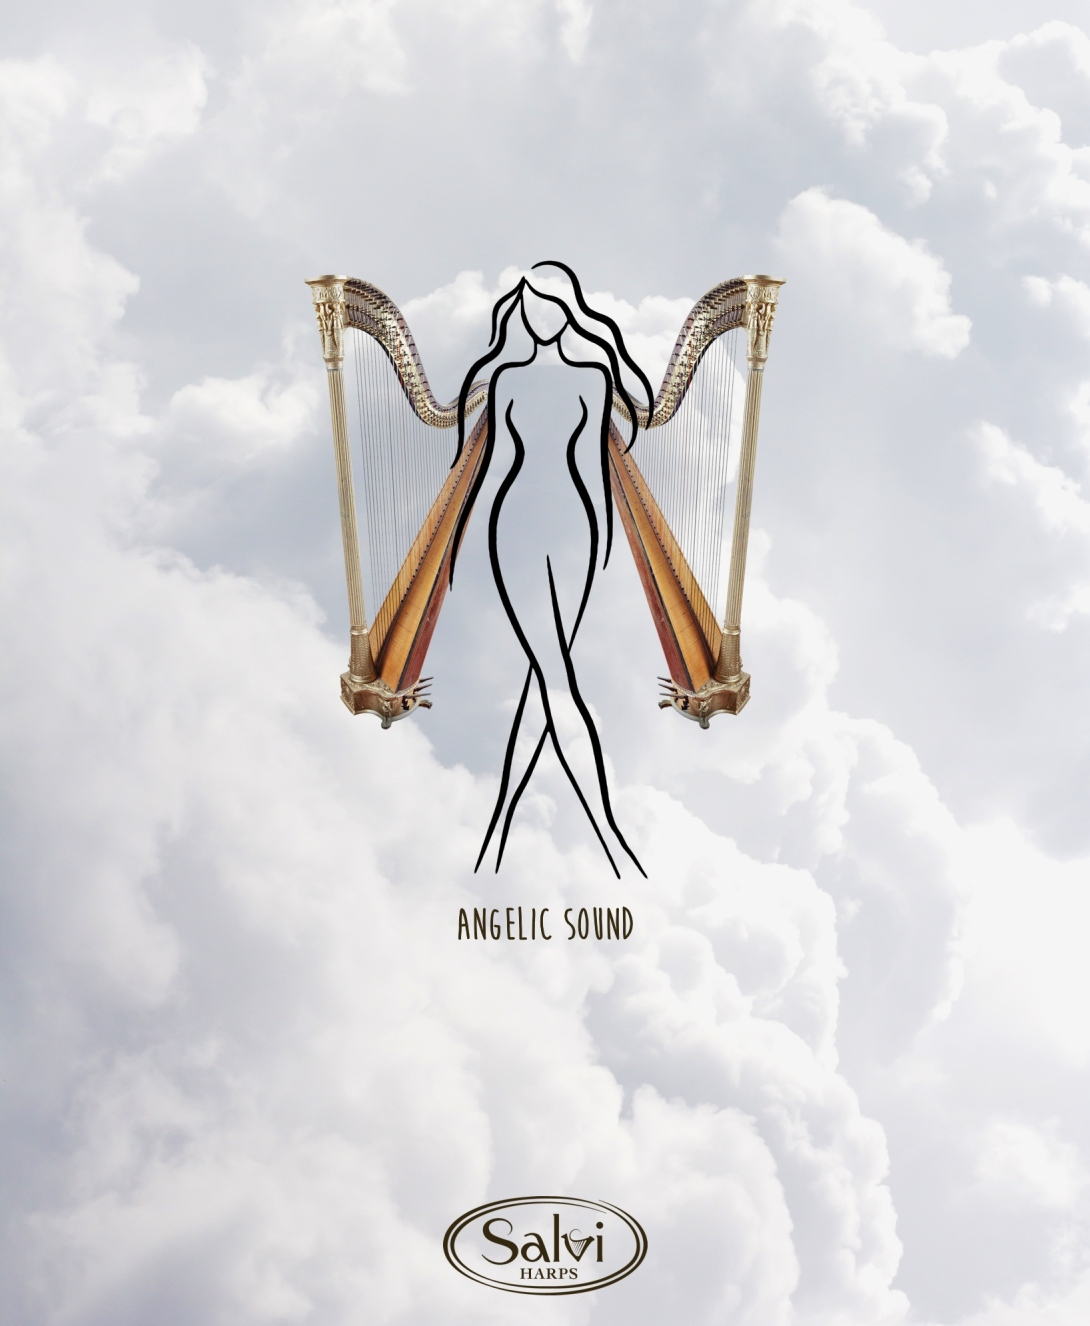 Advertising concept for a harps brand - angelic sound